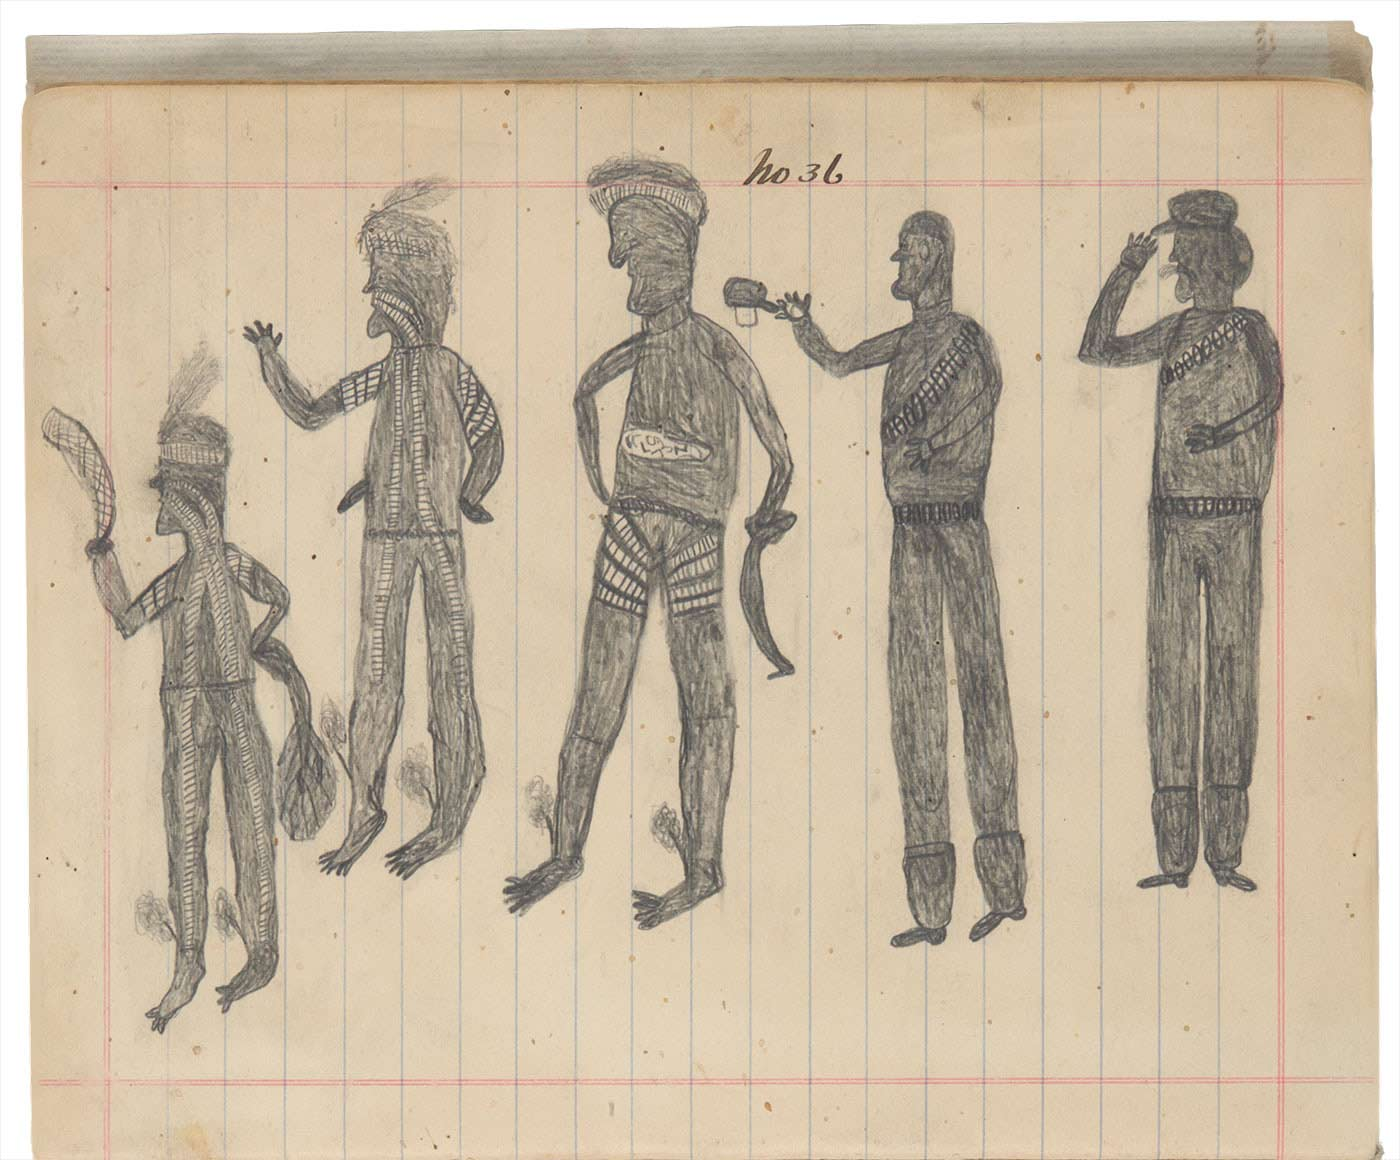 Sketchbook drawing of three Indigenous men dressed in traditional clothing and two men with rounds of ammunition slung across their shoulders - click to view larger image